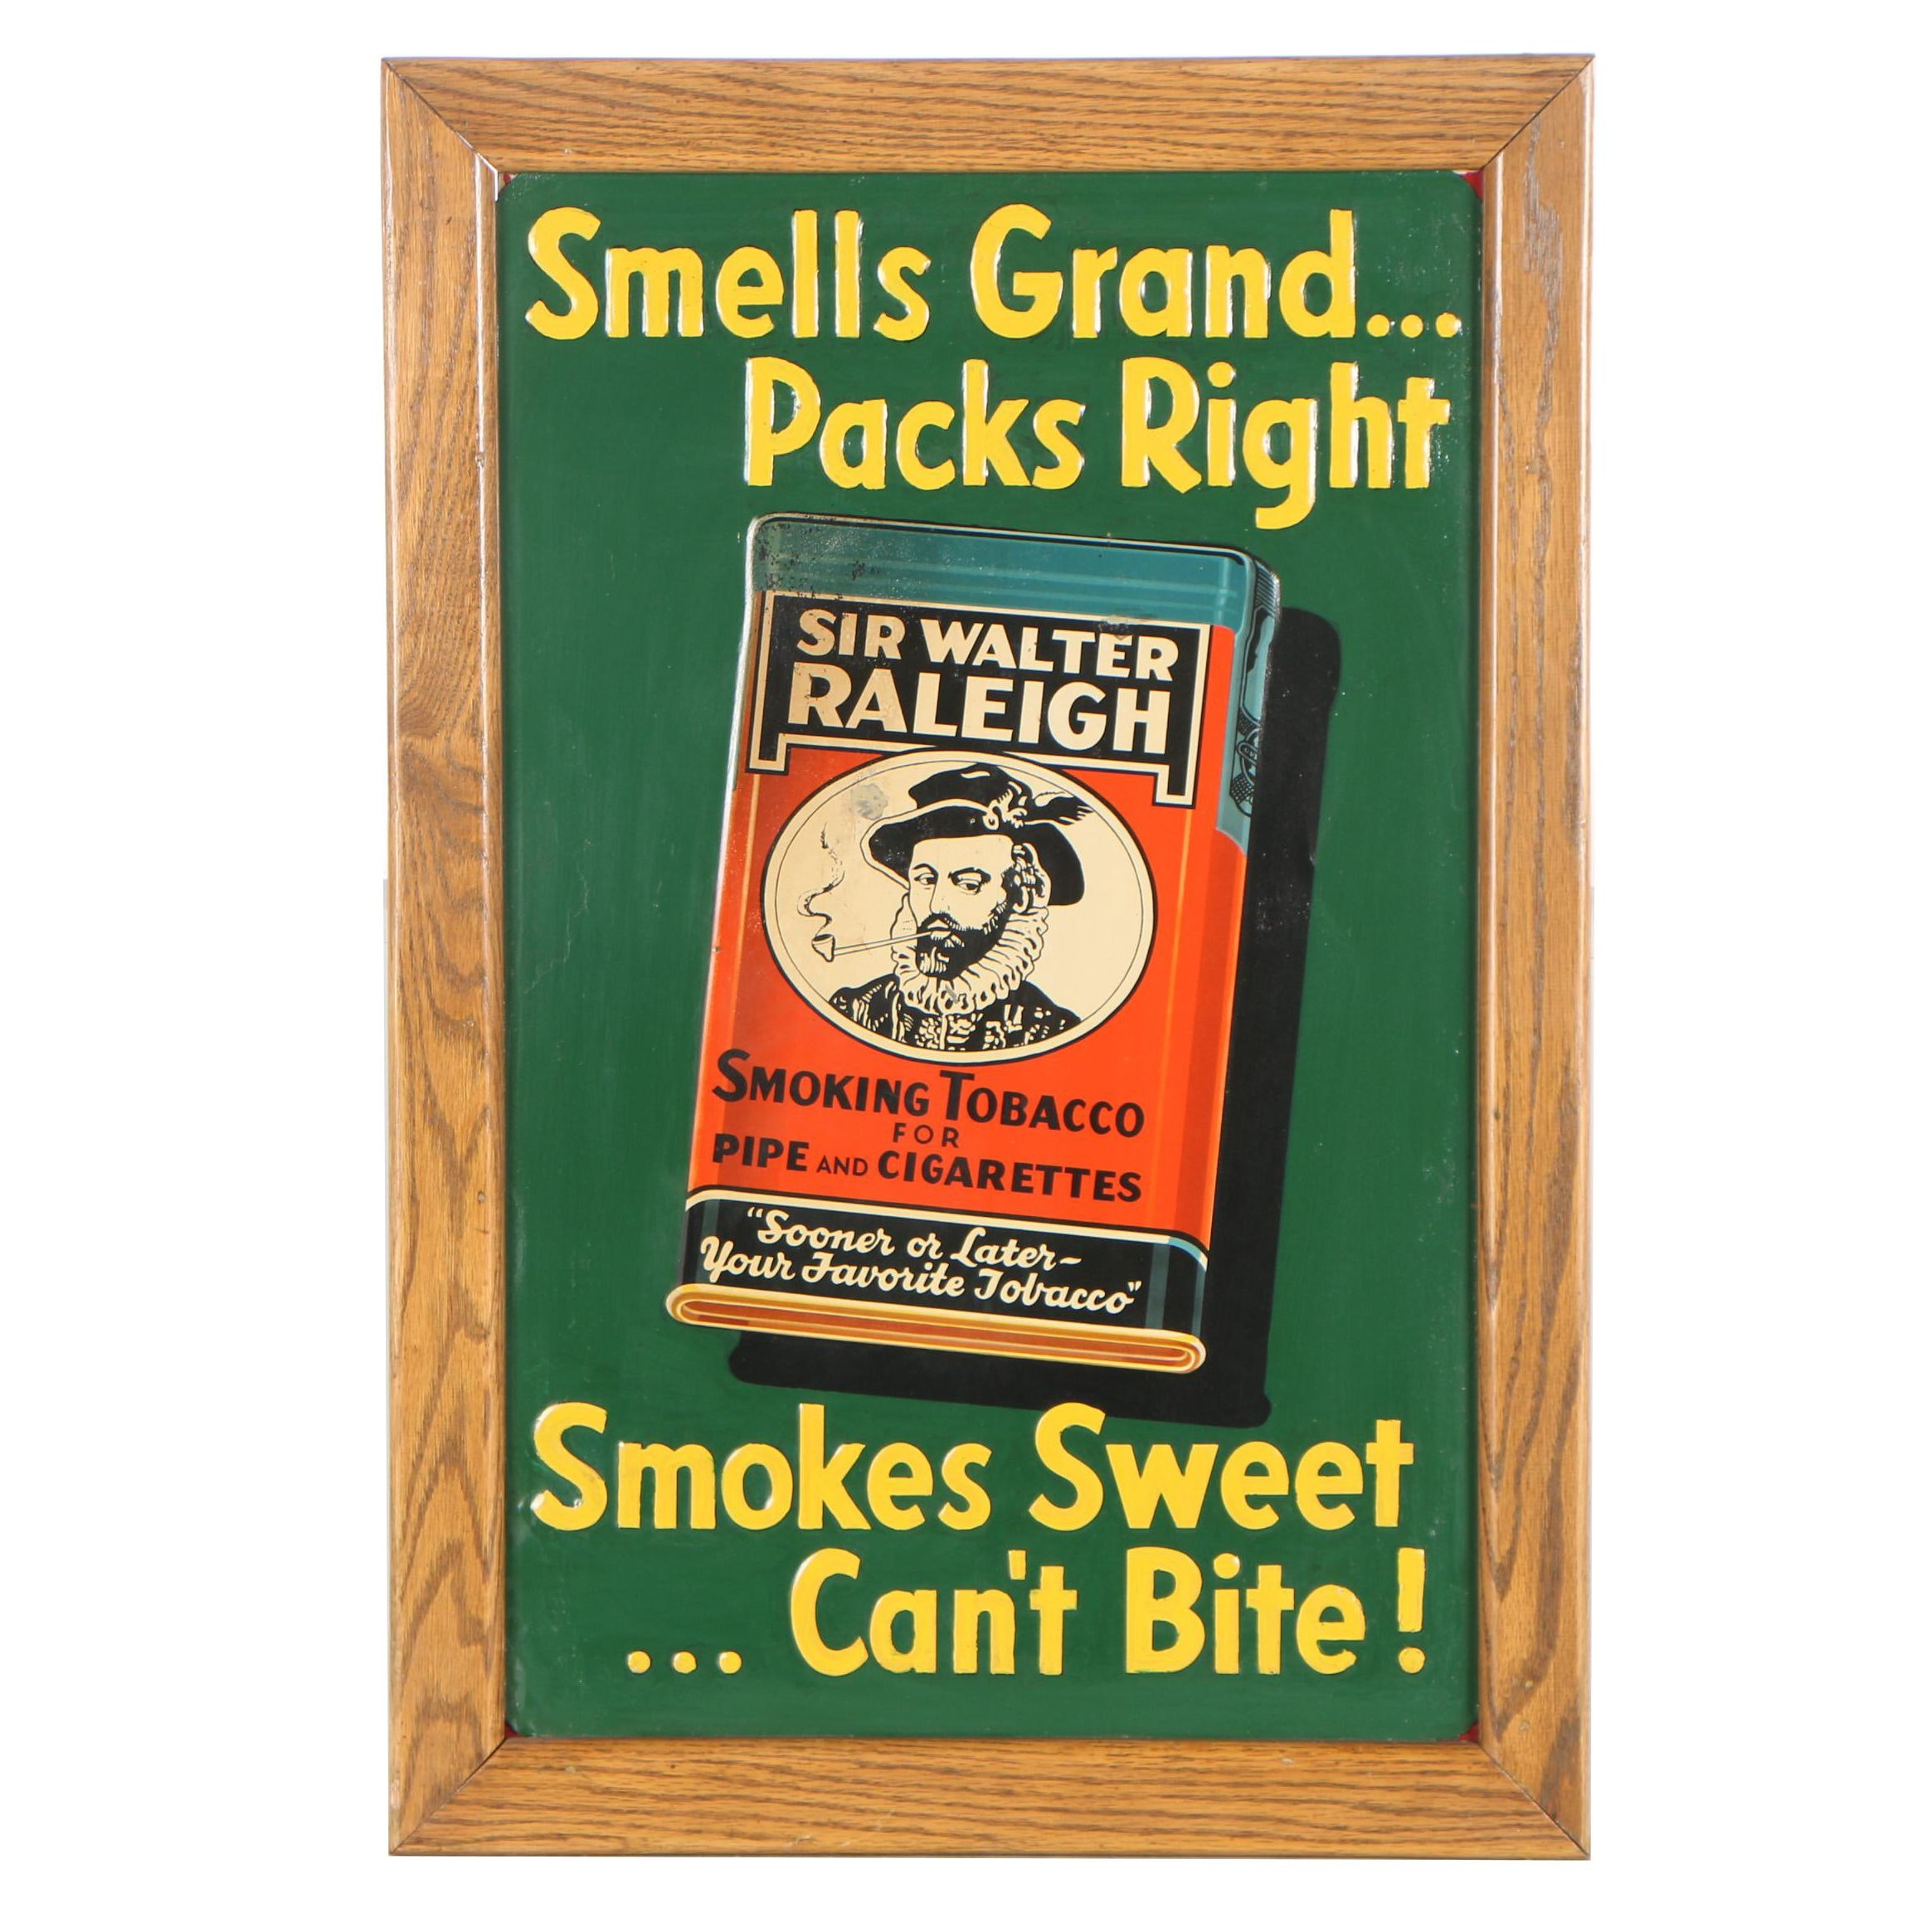 Tin Sign for Sir Walter Raleigh Smoking Tobacco, Mid 20th Century